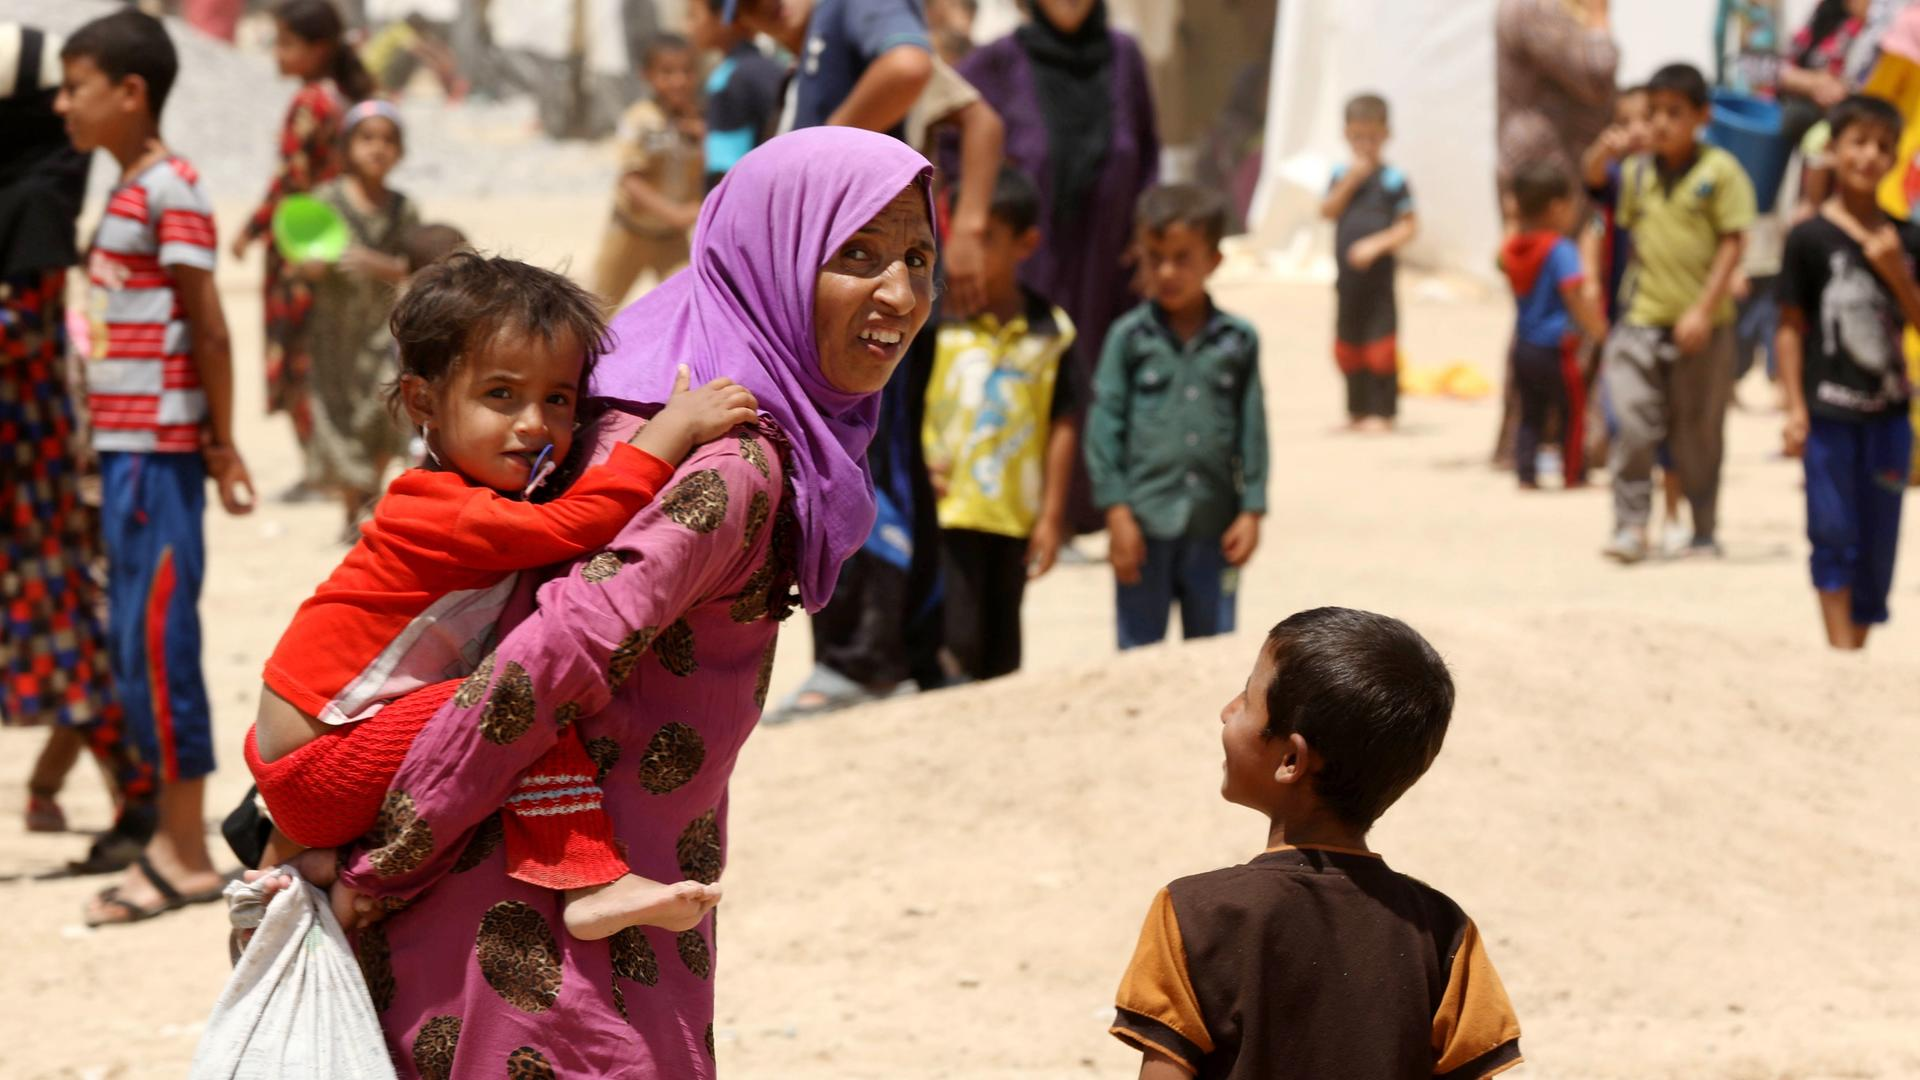 Iraqi family forced to flee home on the outskirts of Mosul to escape from ISIS violence.